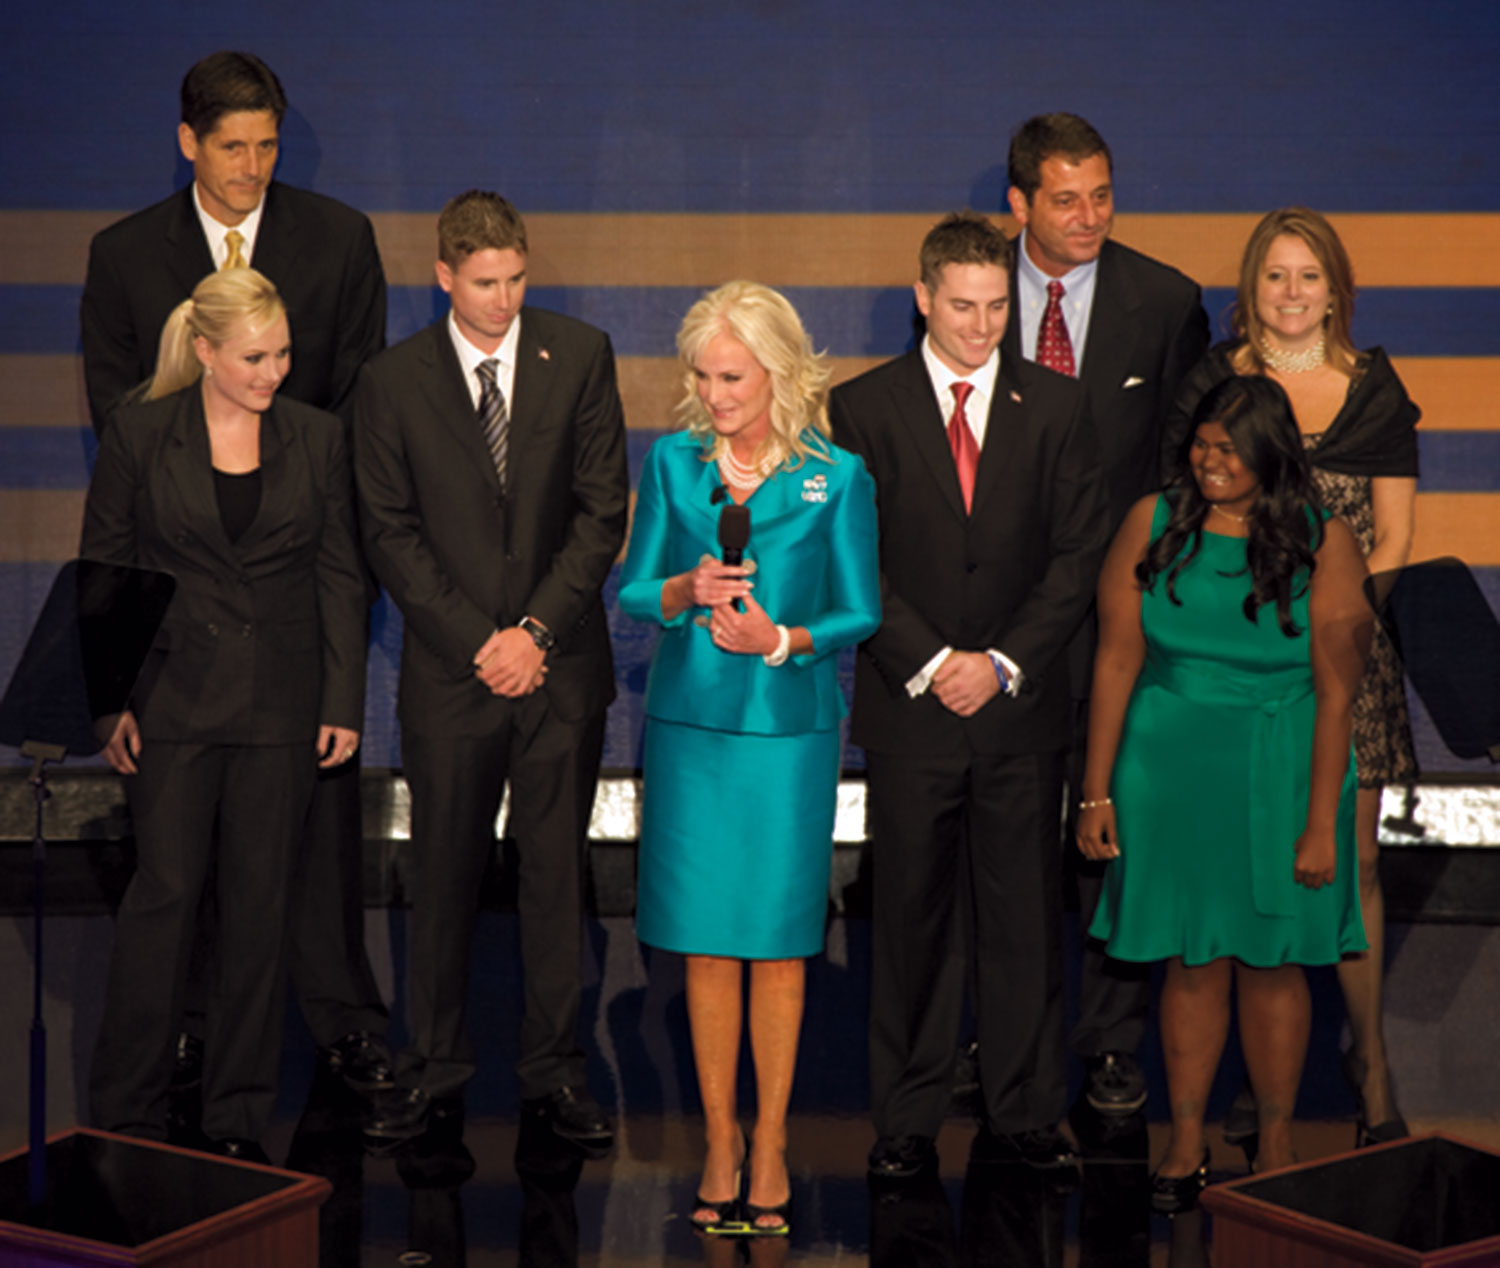 the McCain clan at the Republican National Convention, 2008